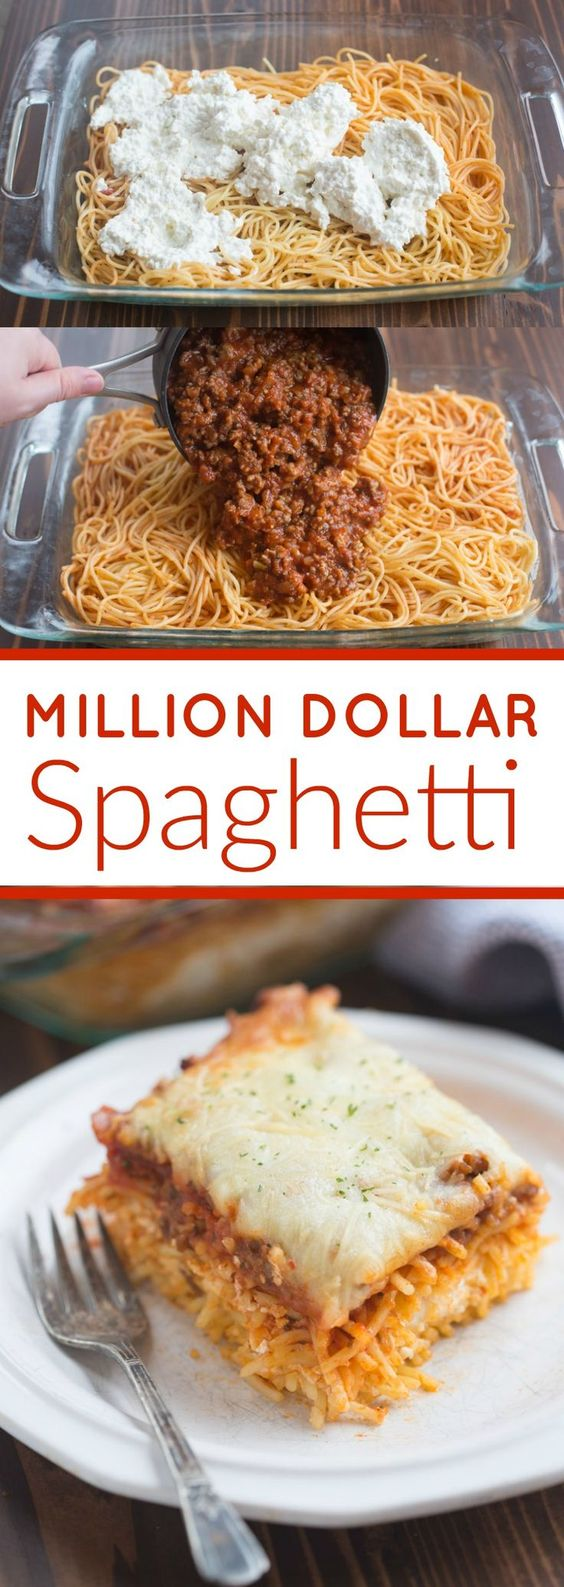 Million #Dollar #Spaghetti